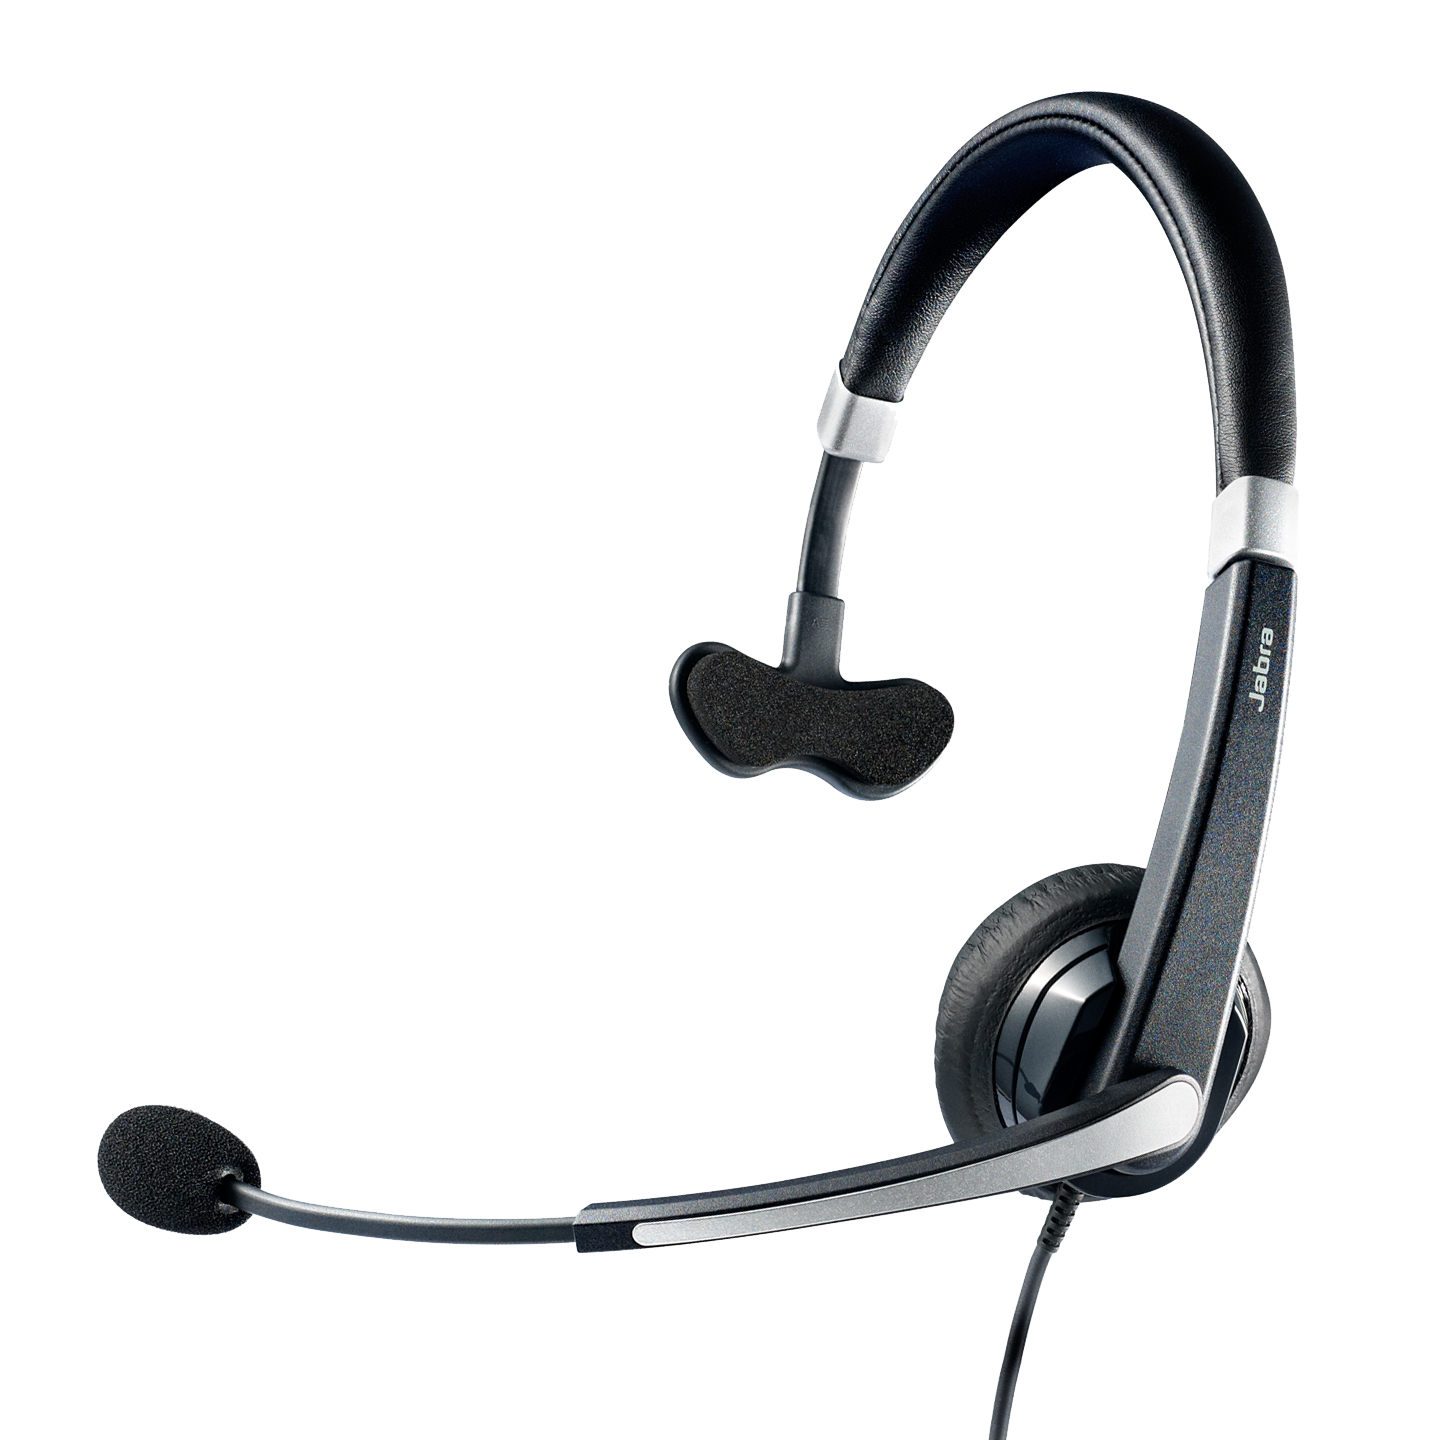 P41 furthermore  also Call Center Worker With Headset 46010 moreover Customer Stories also Jabra GN 9120 Flex Binaural Noise Cancelling. on call center headsets